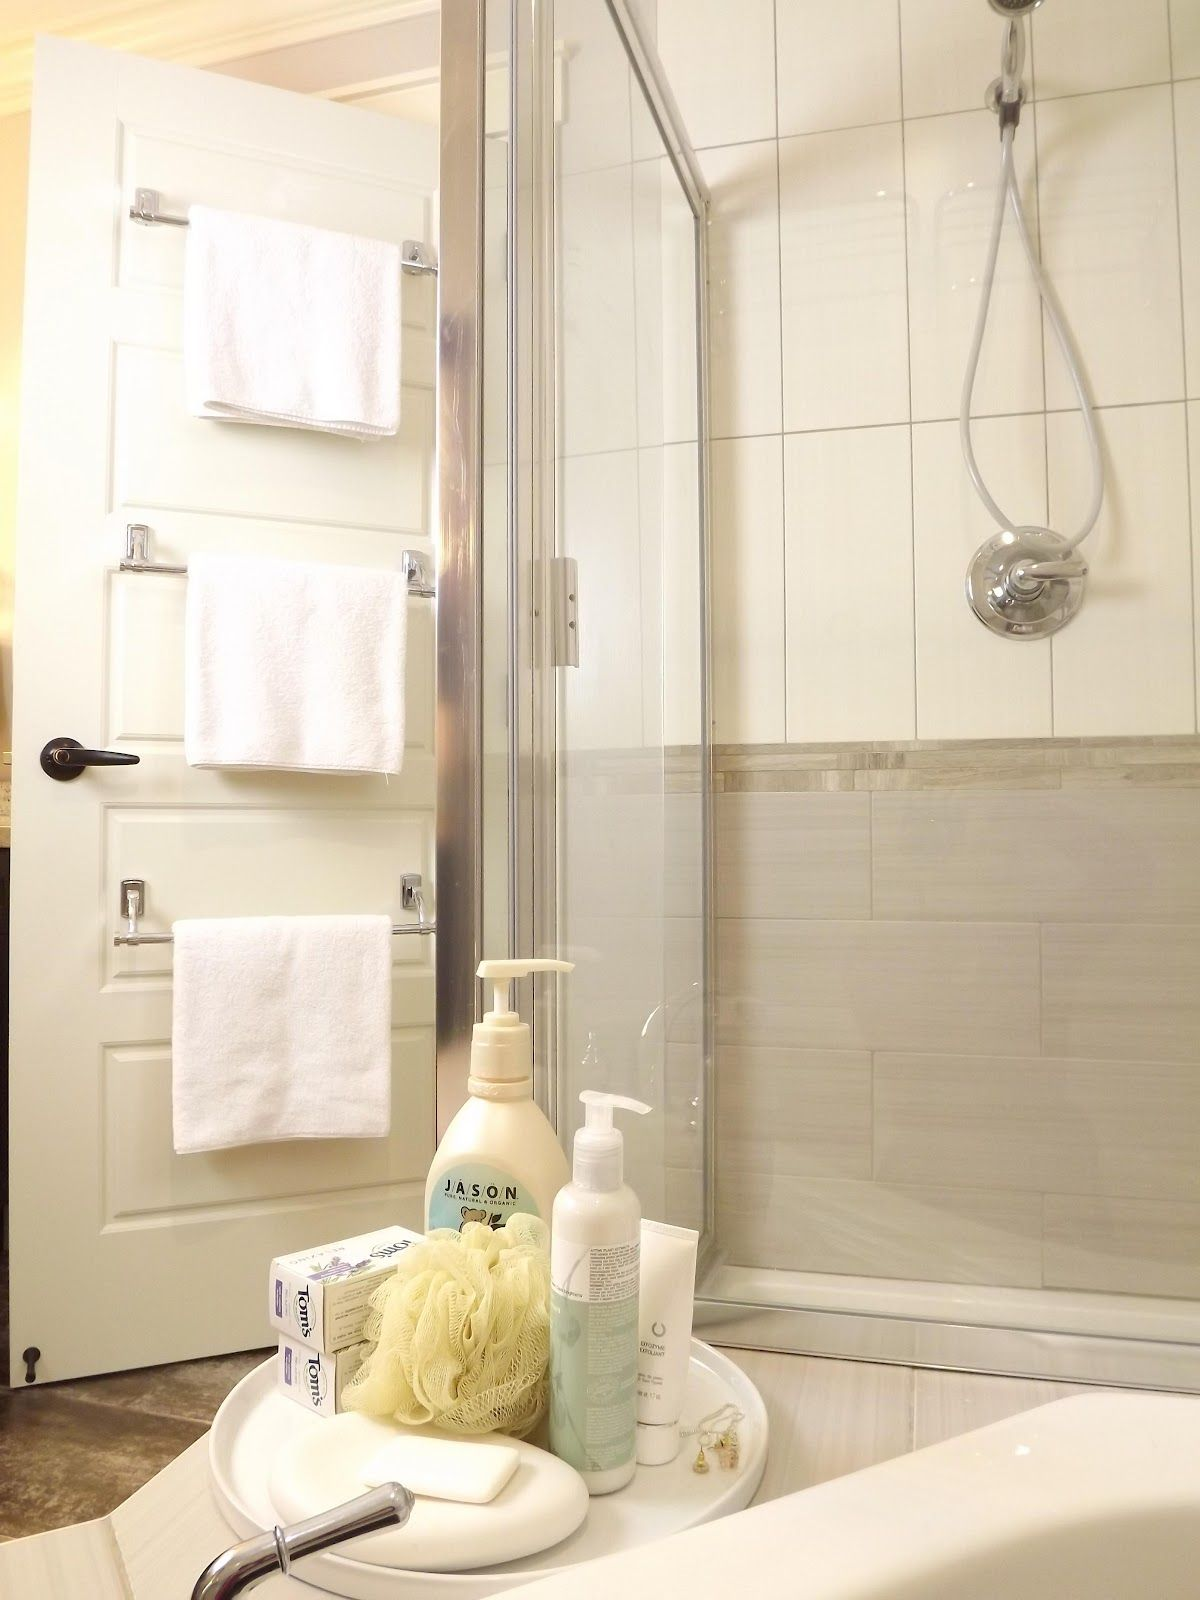 Bathroom Towel Bar Ideas Awesome Attach Multiple Towel Bars To The Back Of The Bathroom Door  For Inspiration Design